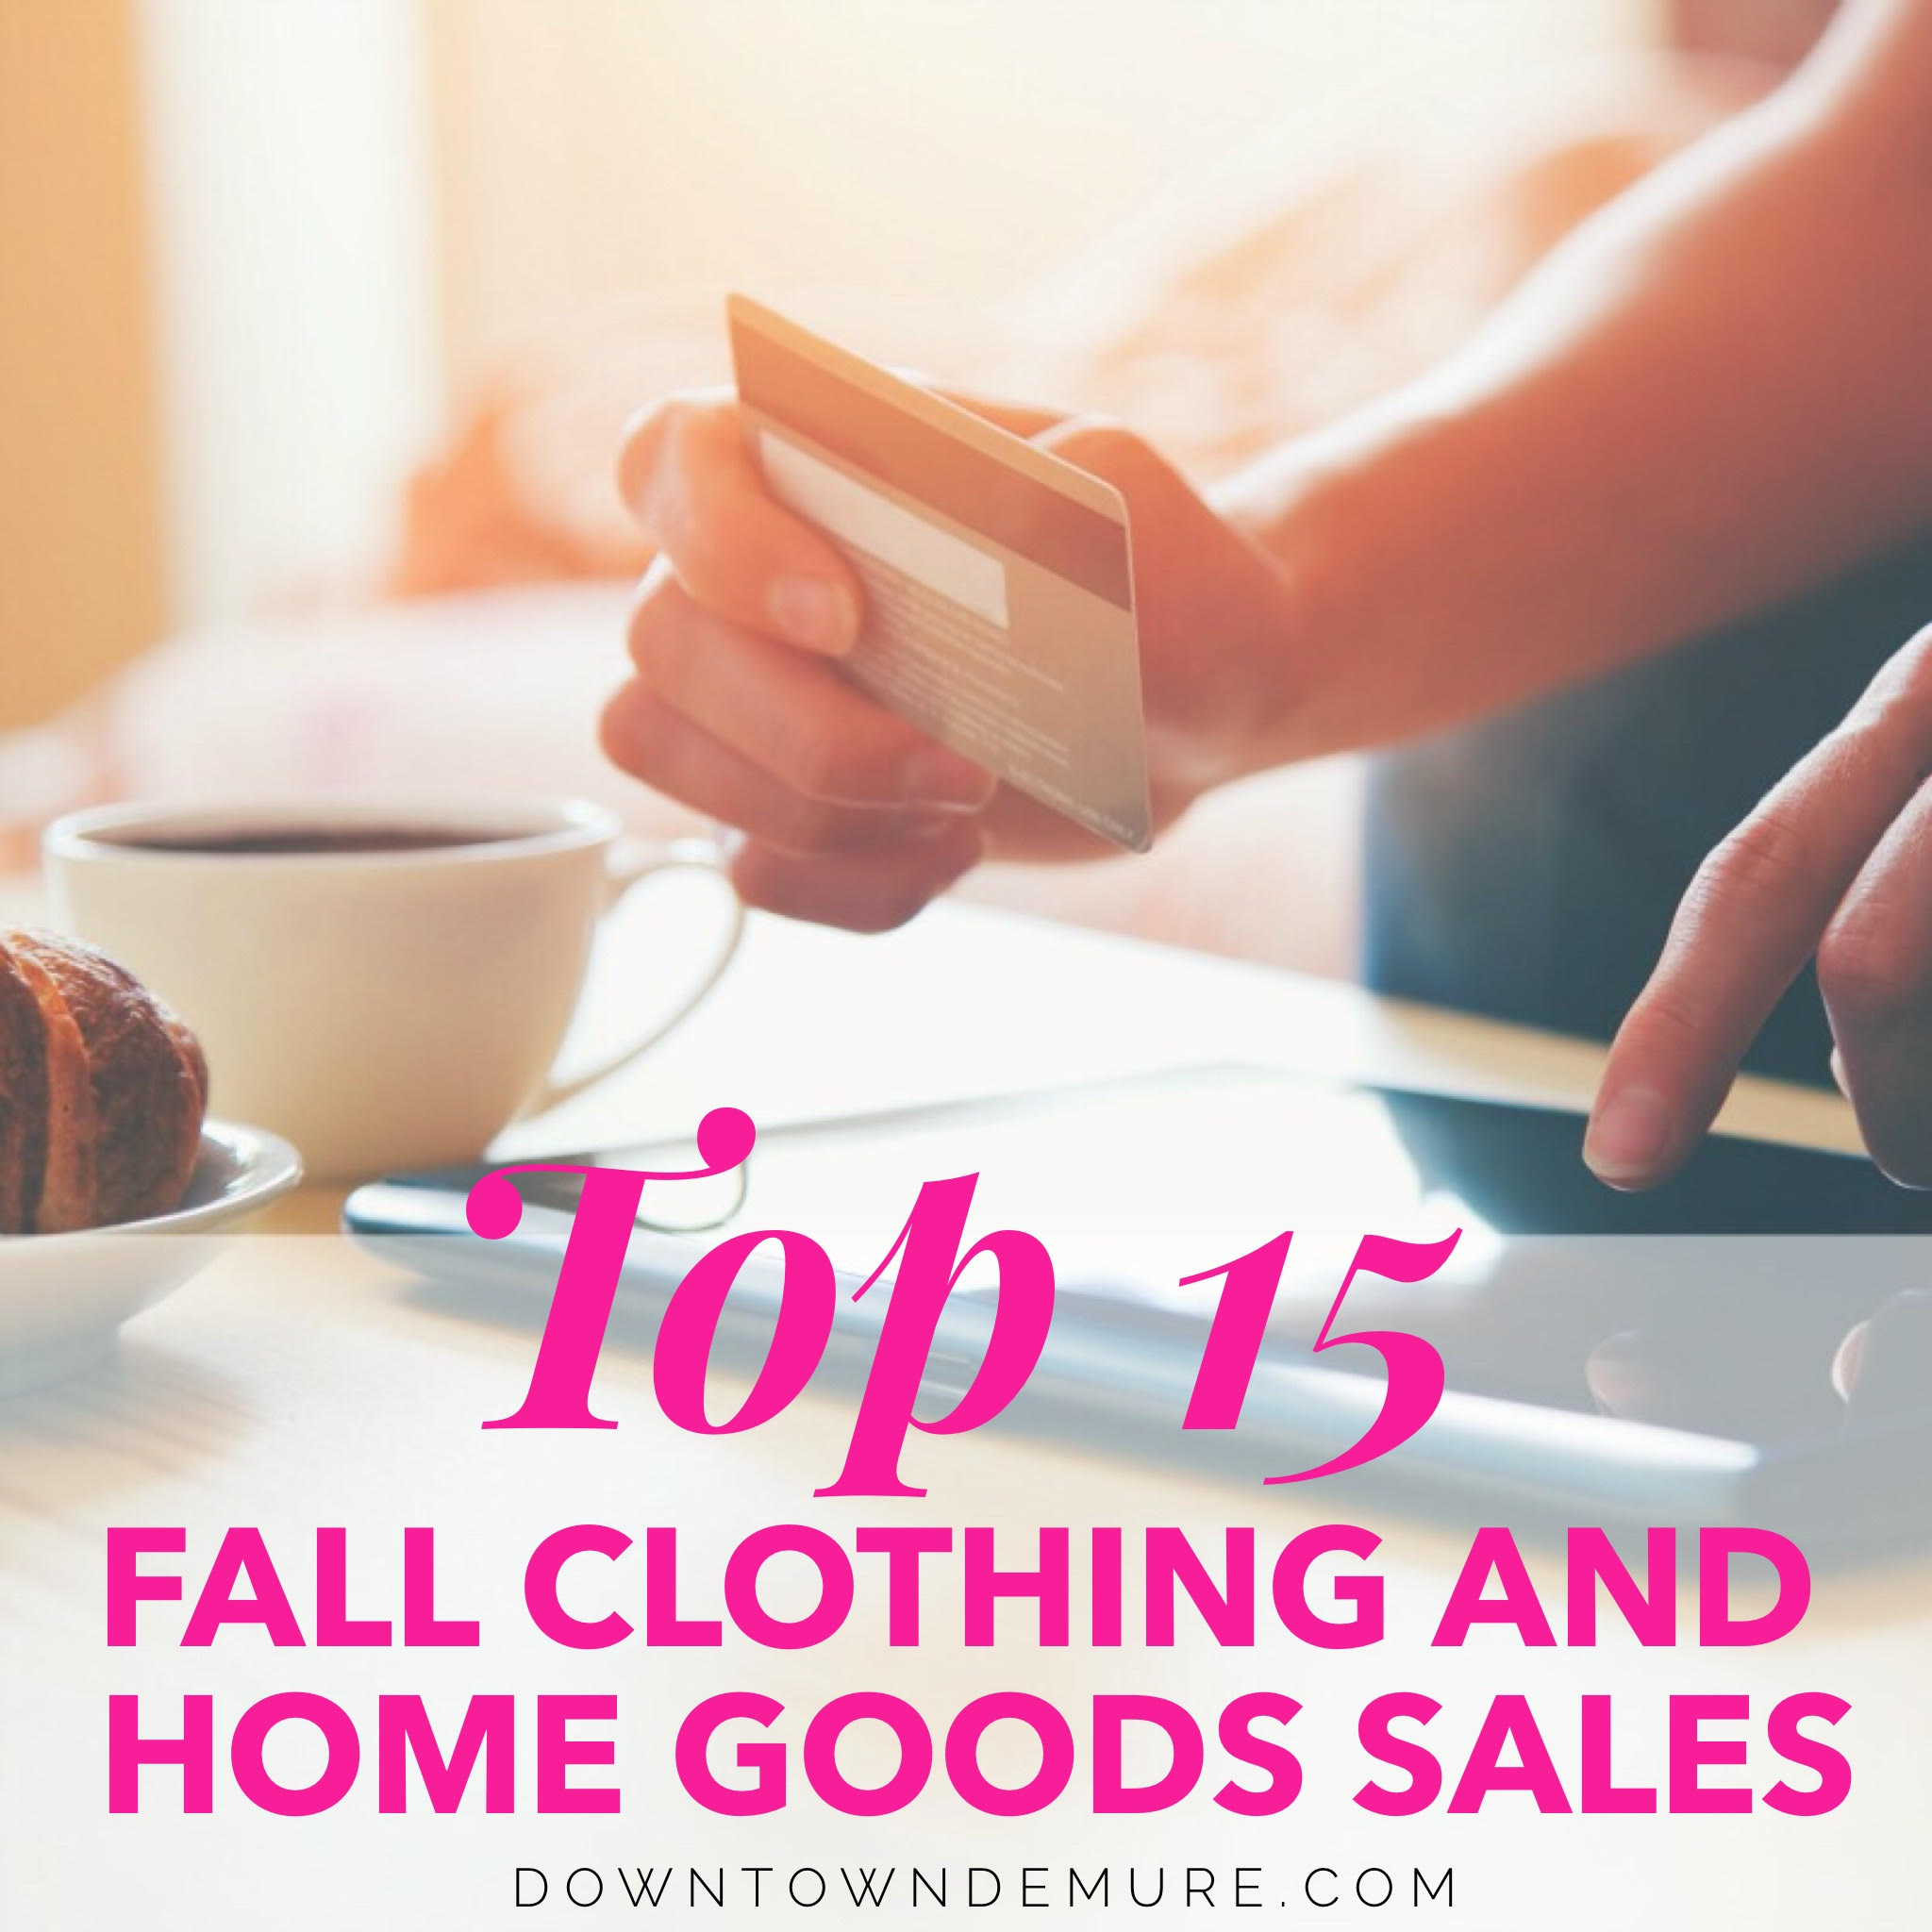 Top 15 Fall Clothing and Home Goods Sales via Groupon Coupons   Downtown  Demure. Top 15 Fall Clothing   Home Goods Sales   Downtown Demure